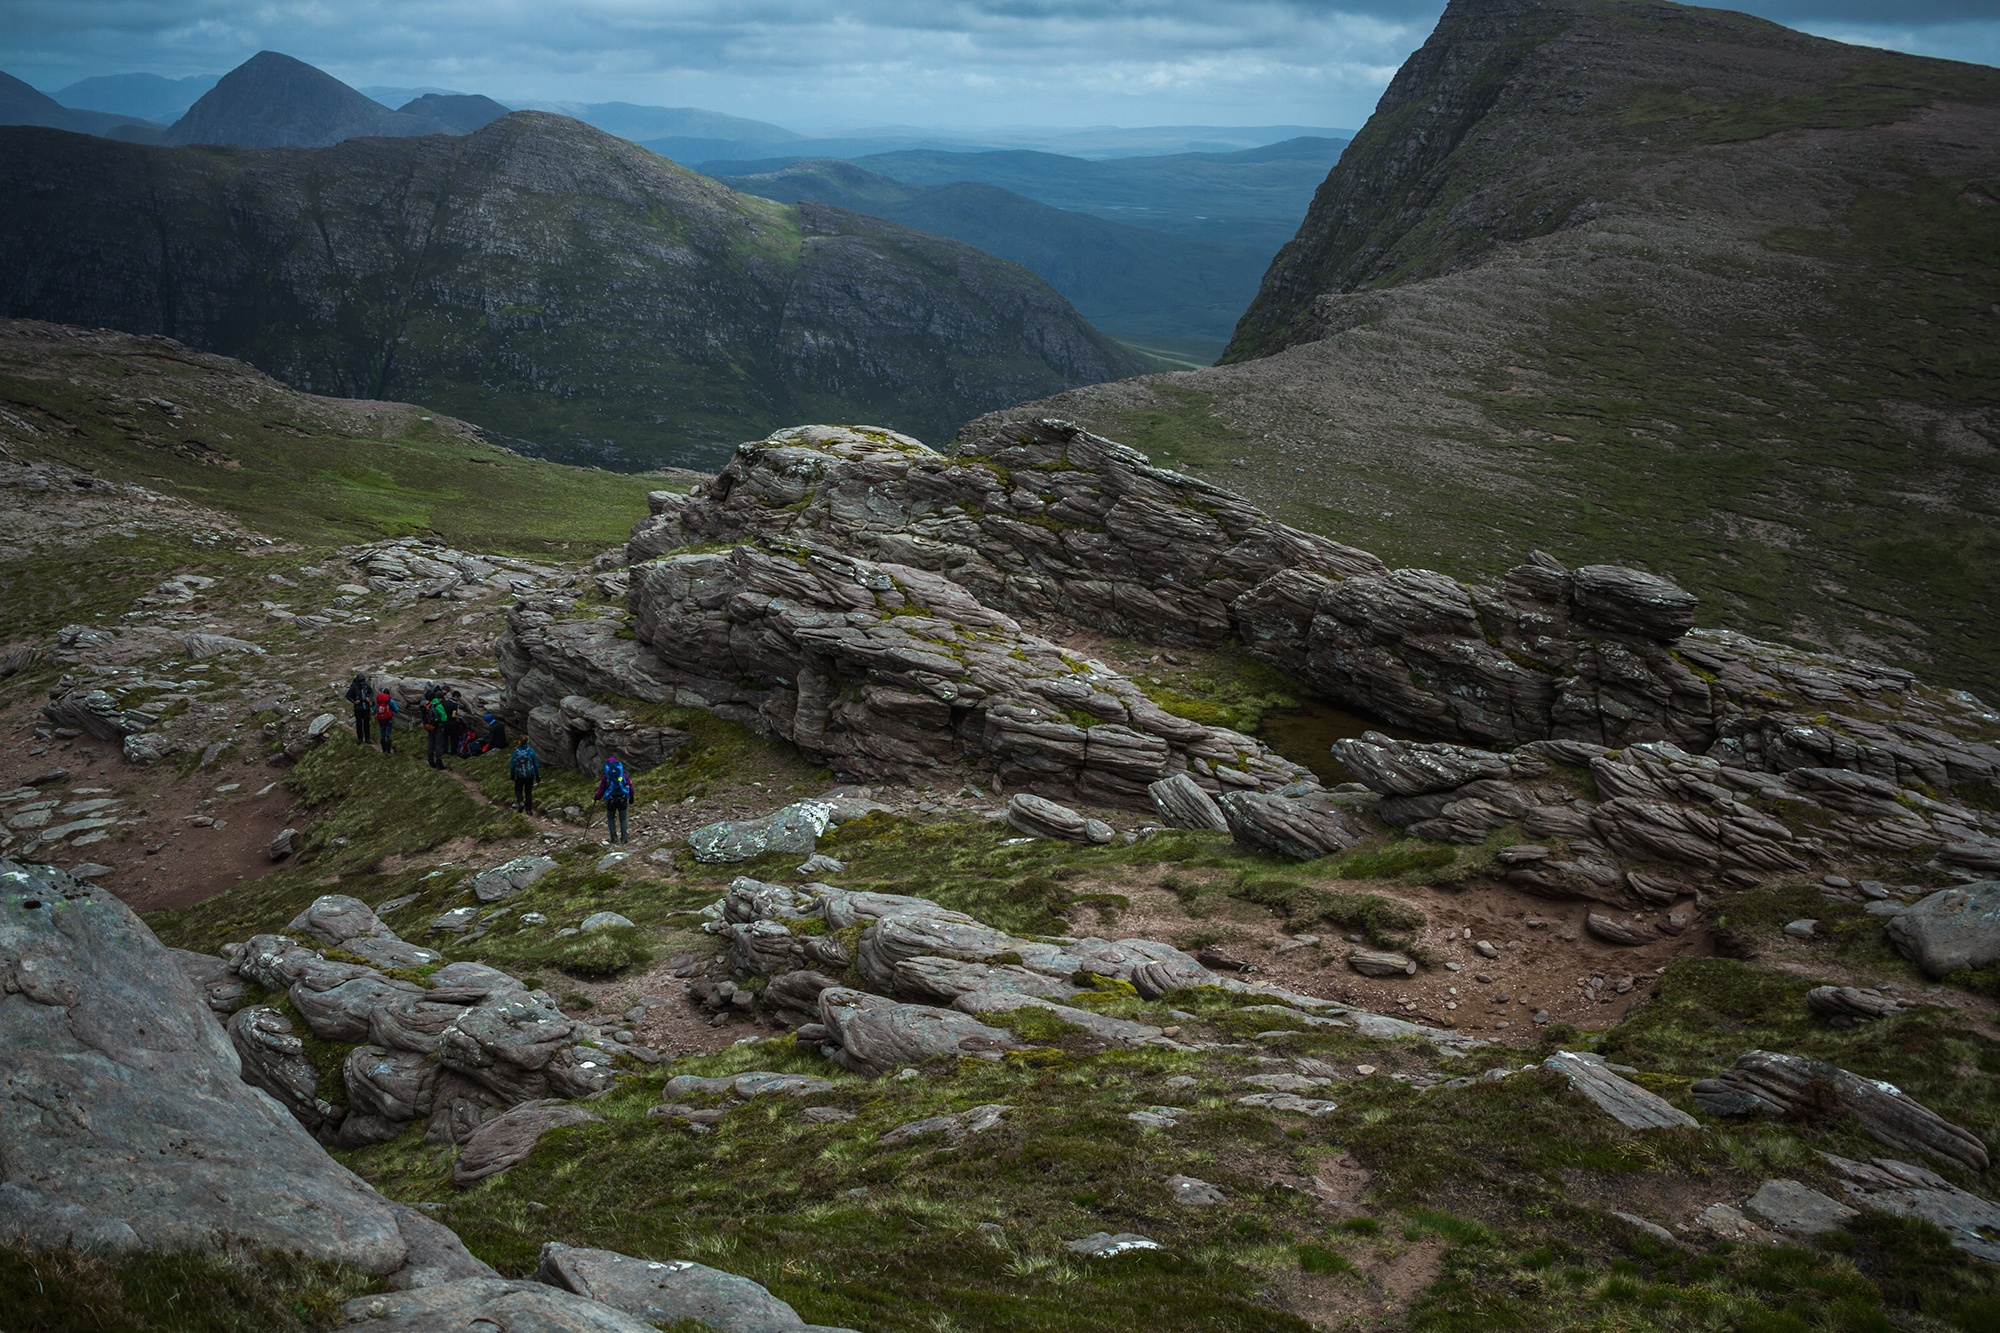 Photograph of The Seven Peaks of Coigach, shot by Jessie Leong